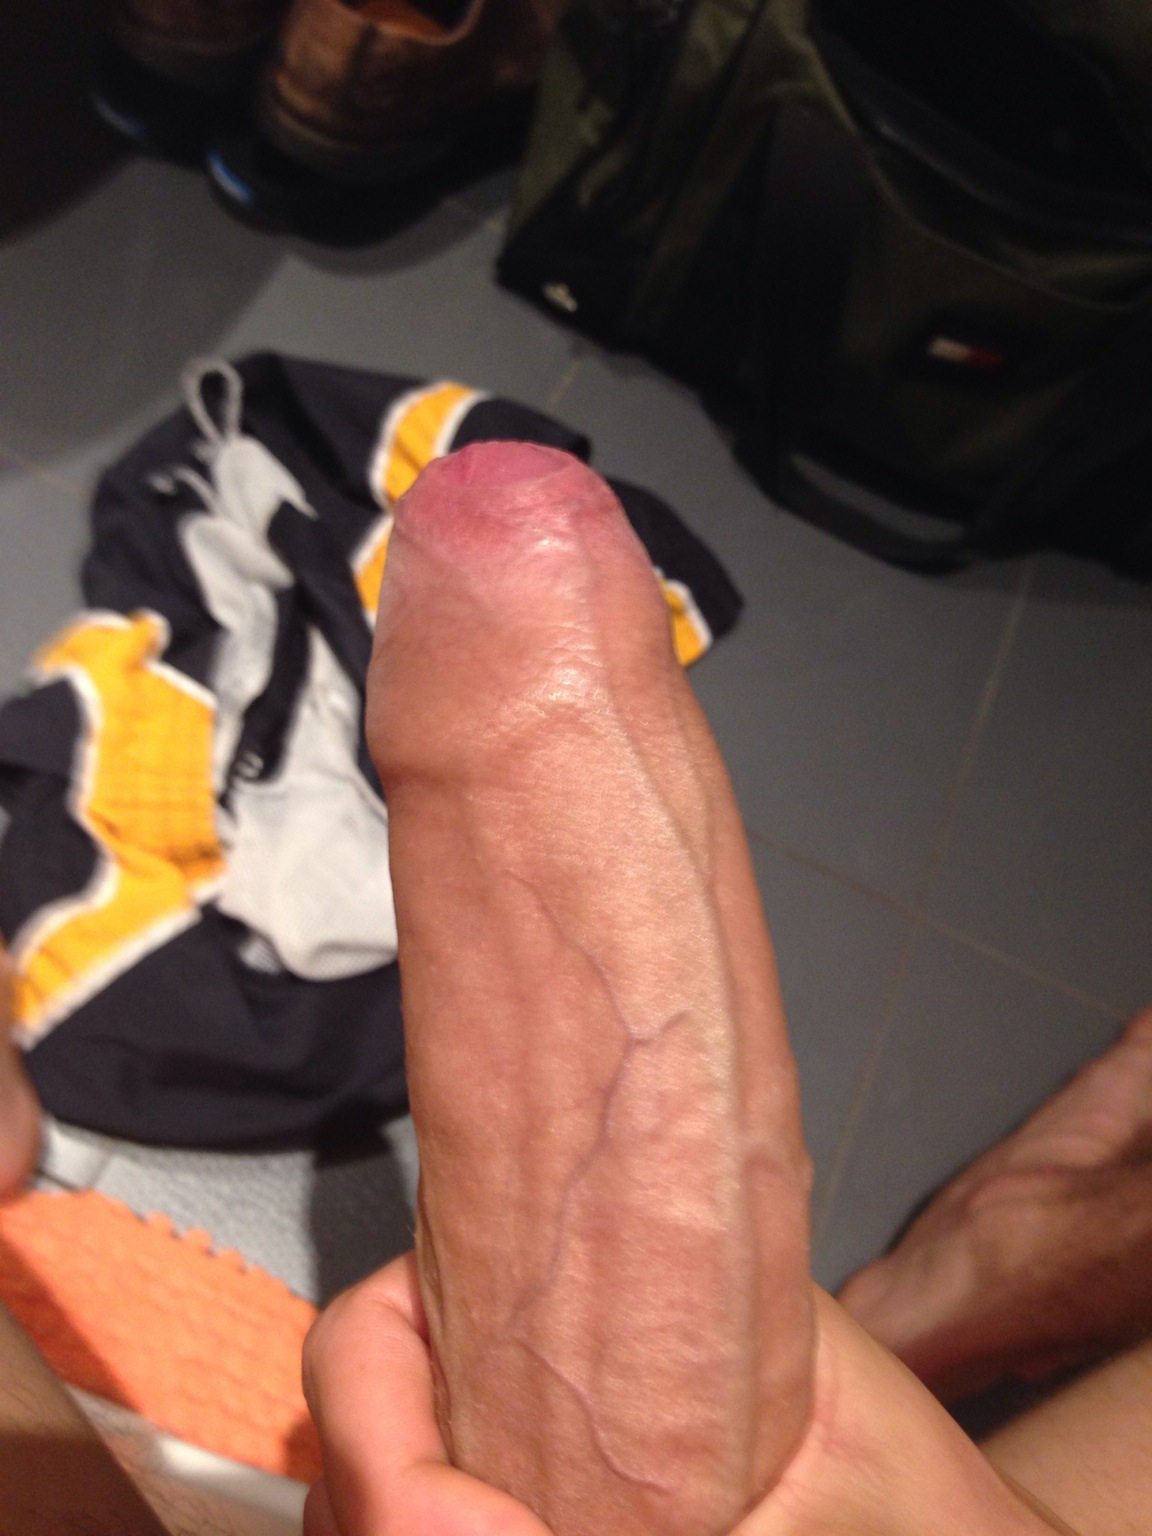 Veiny piece of meat